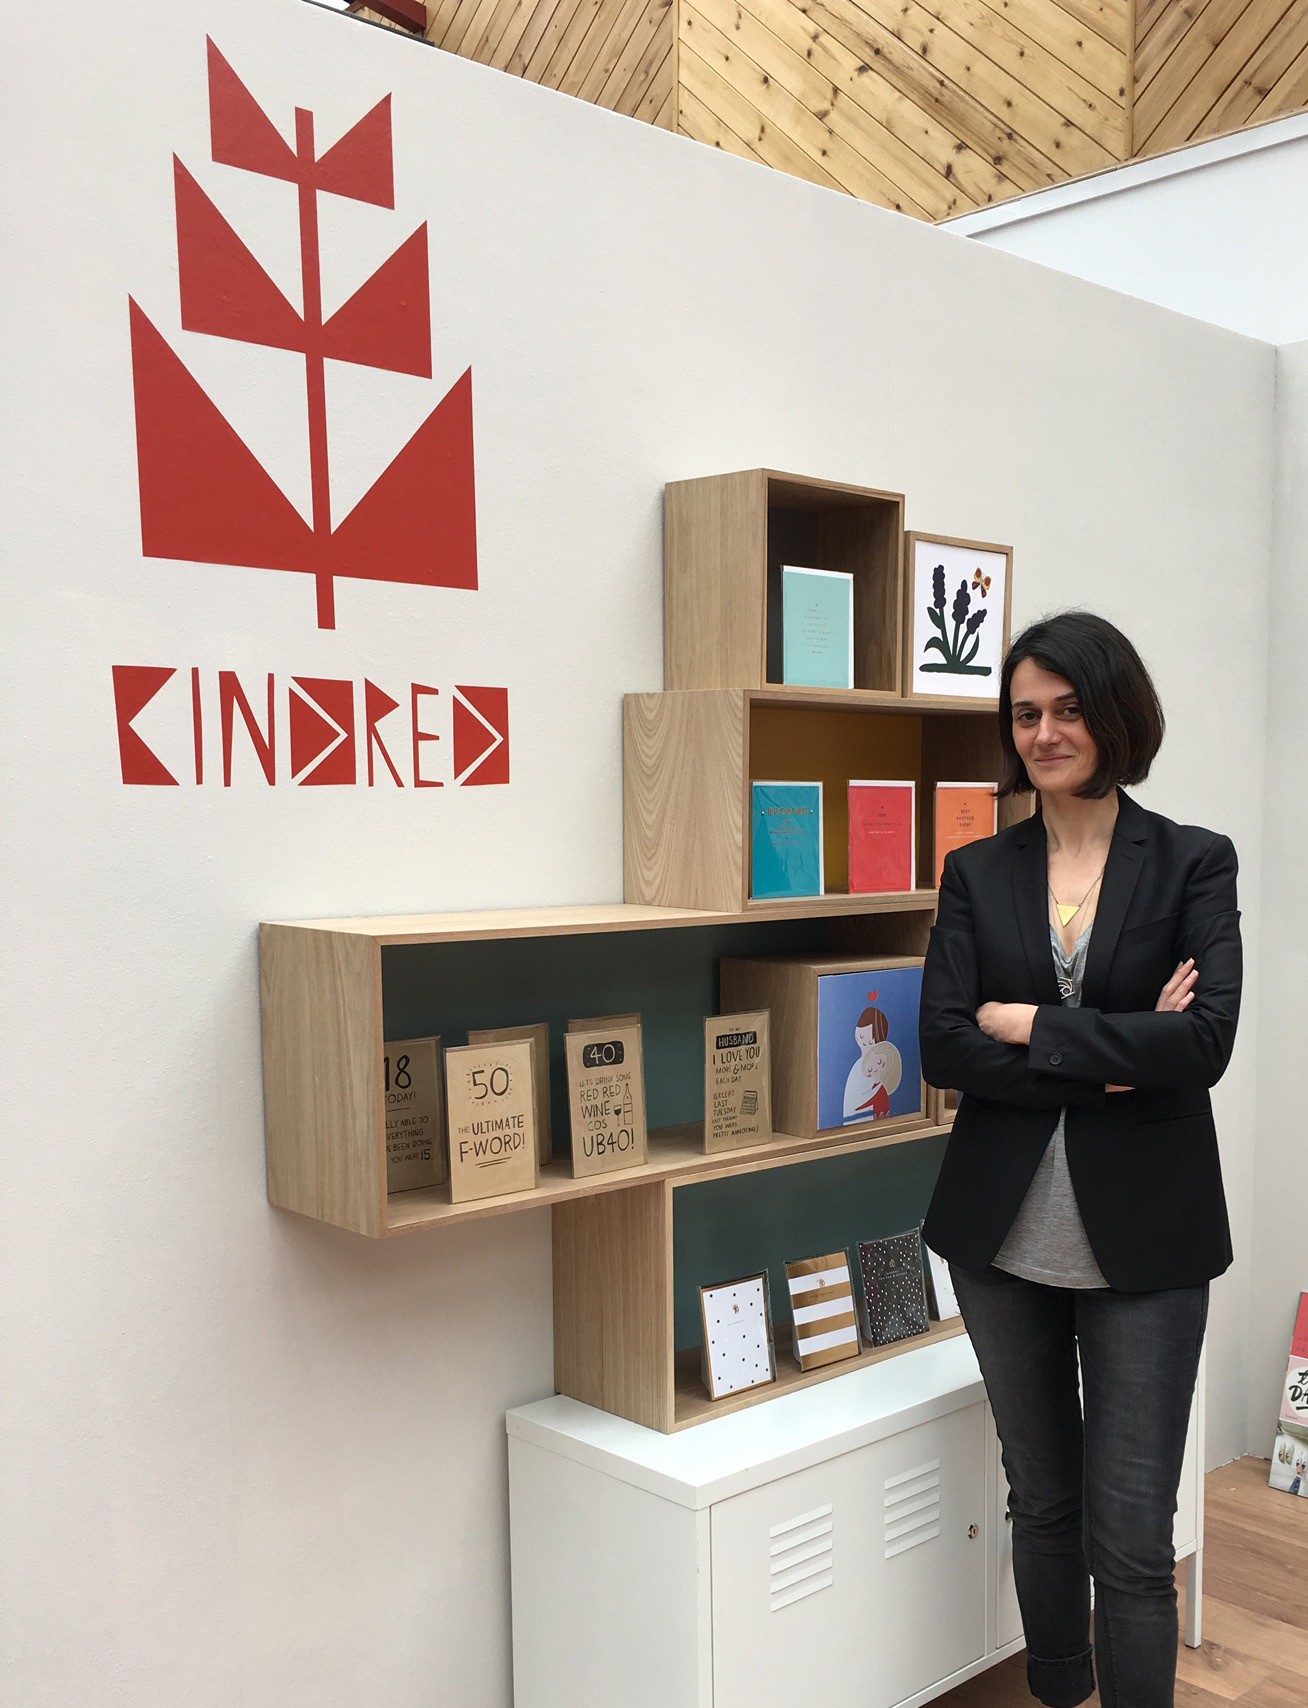 Above: UKG's Sandi Parisi with the company's Kindred brand, which has wellness and mindfulness influenced designs within its collection.